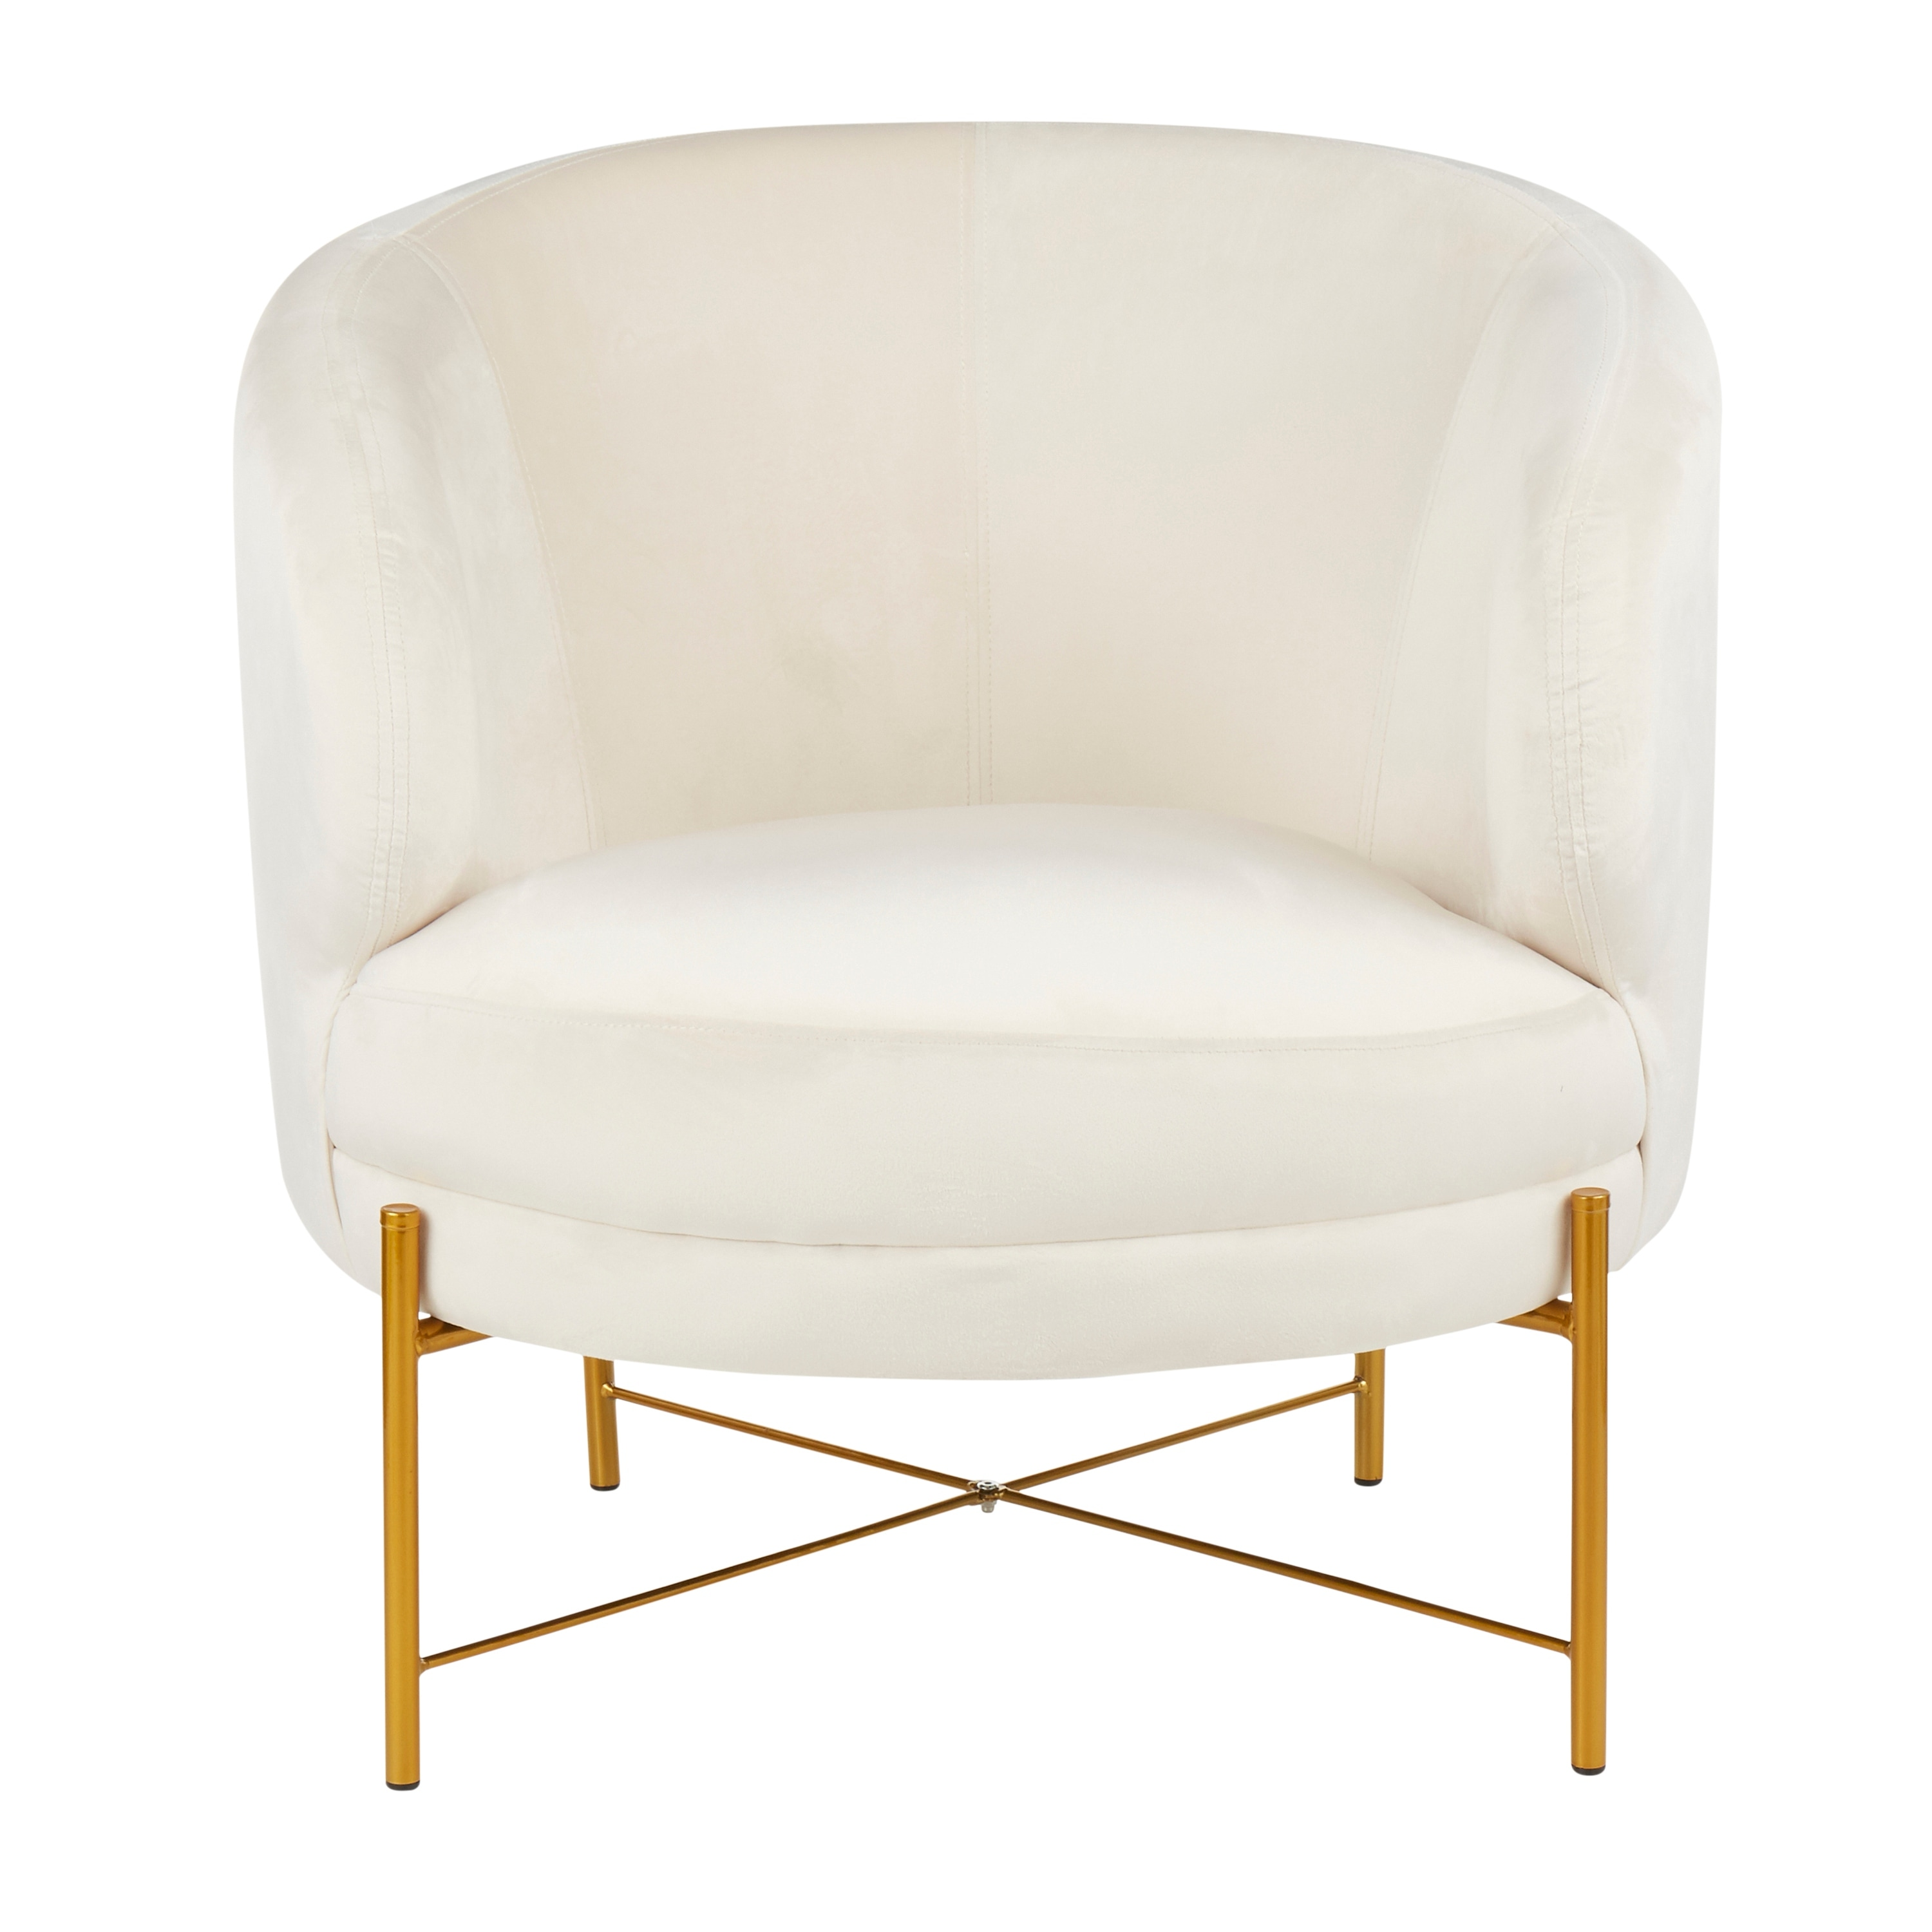 22+ Gold Accent Chair Images